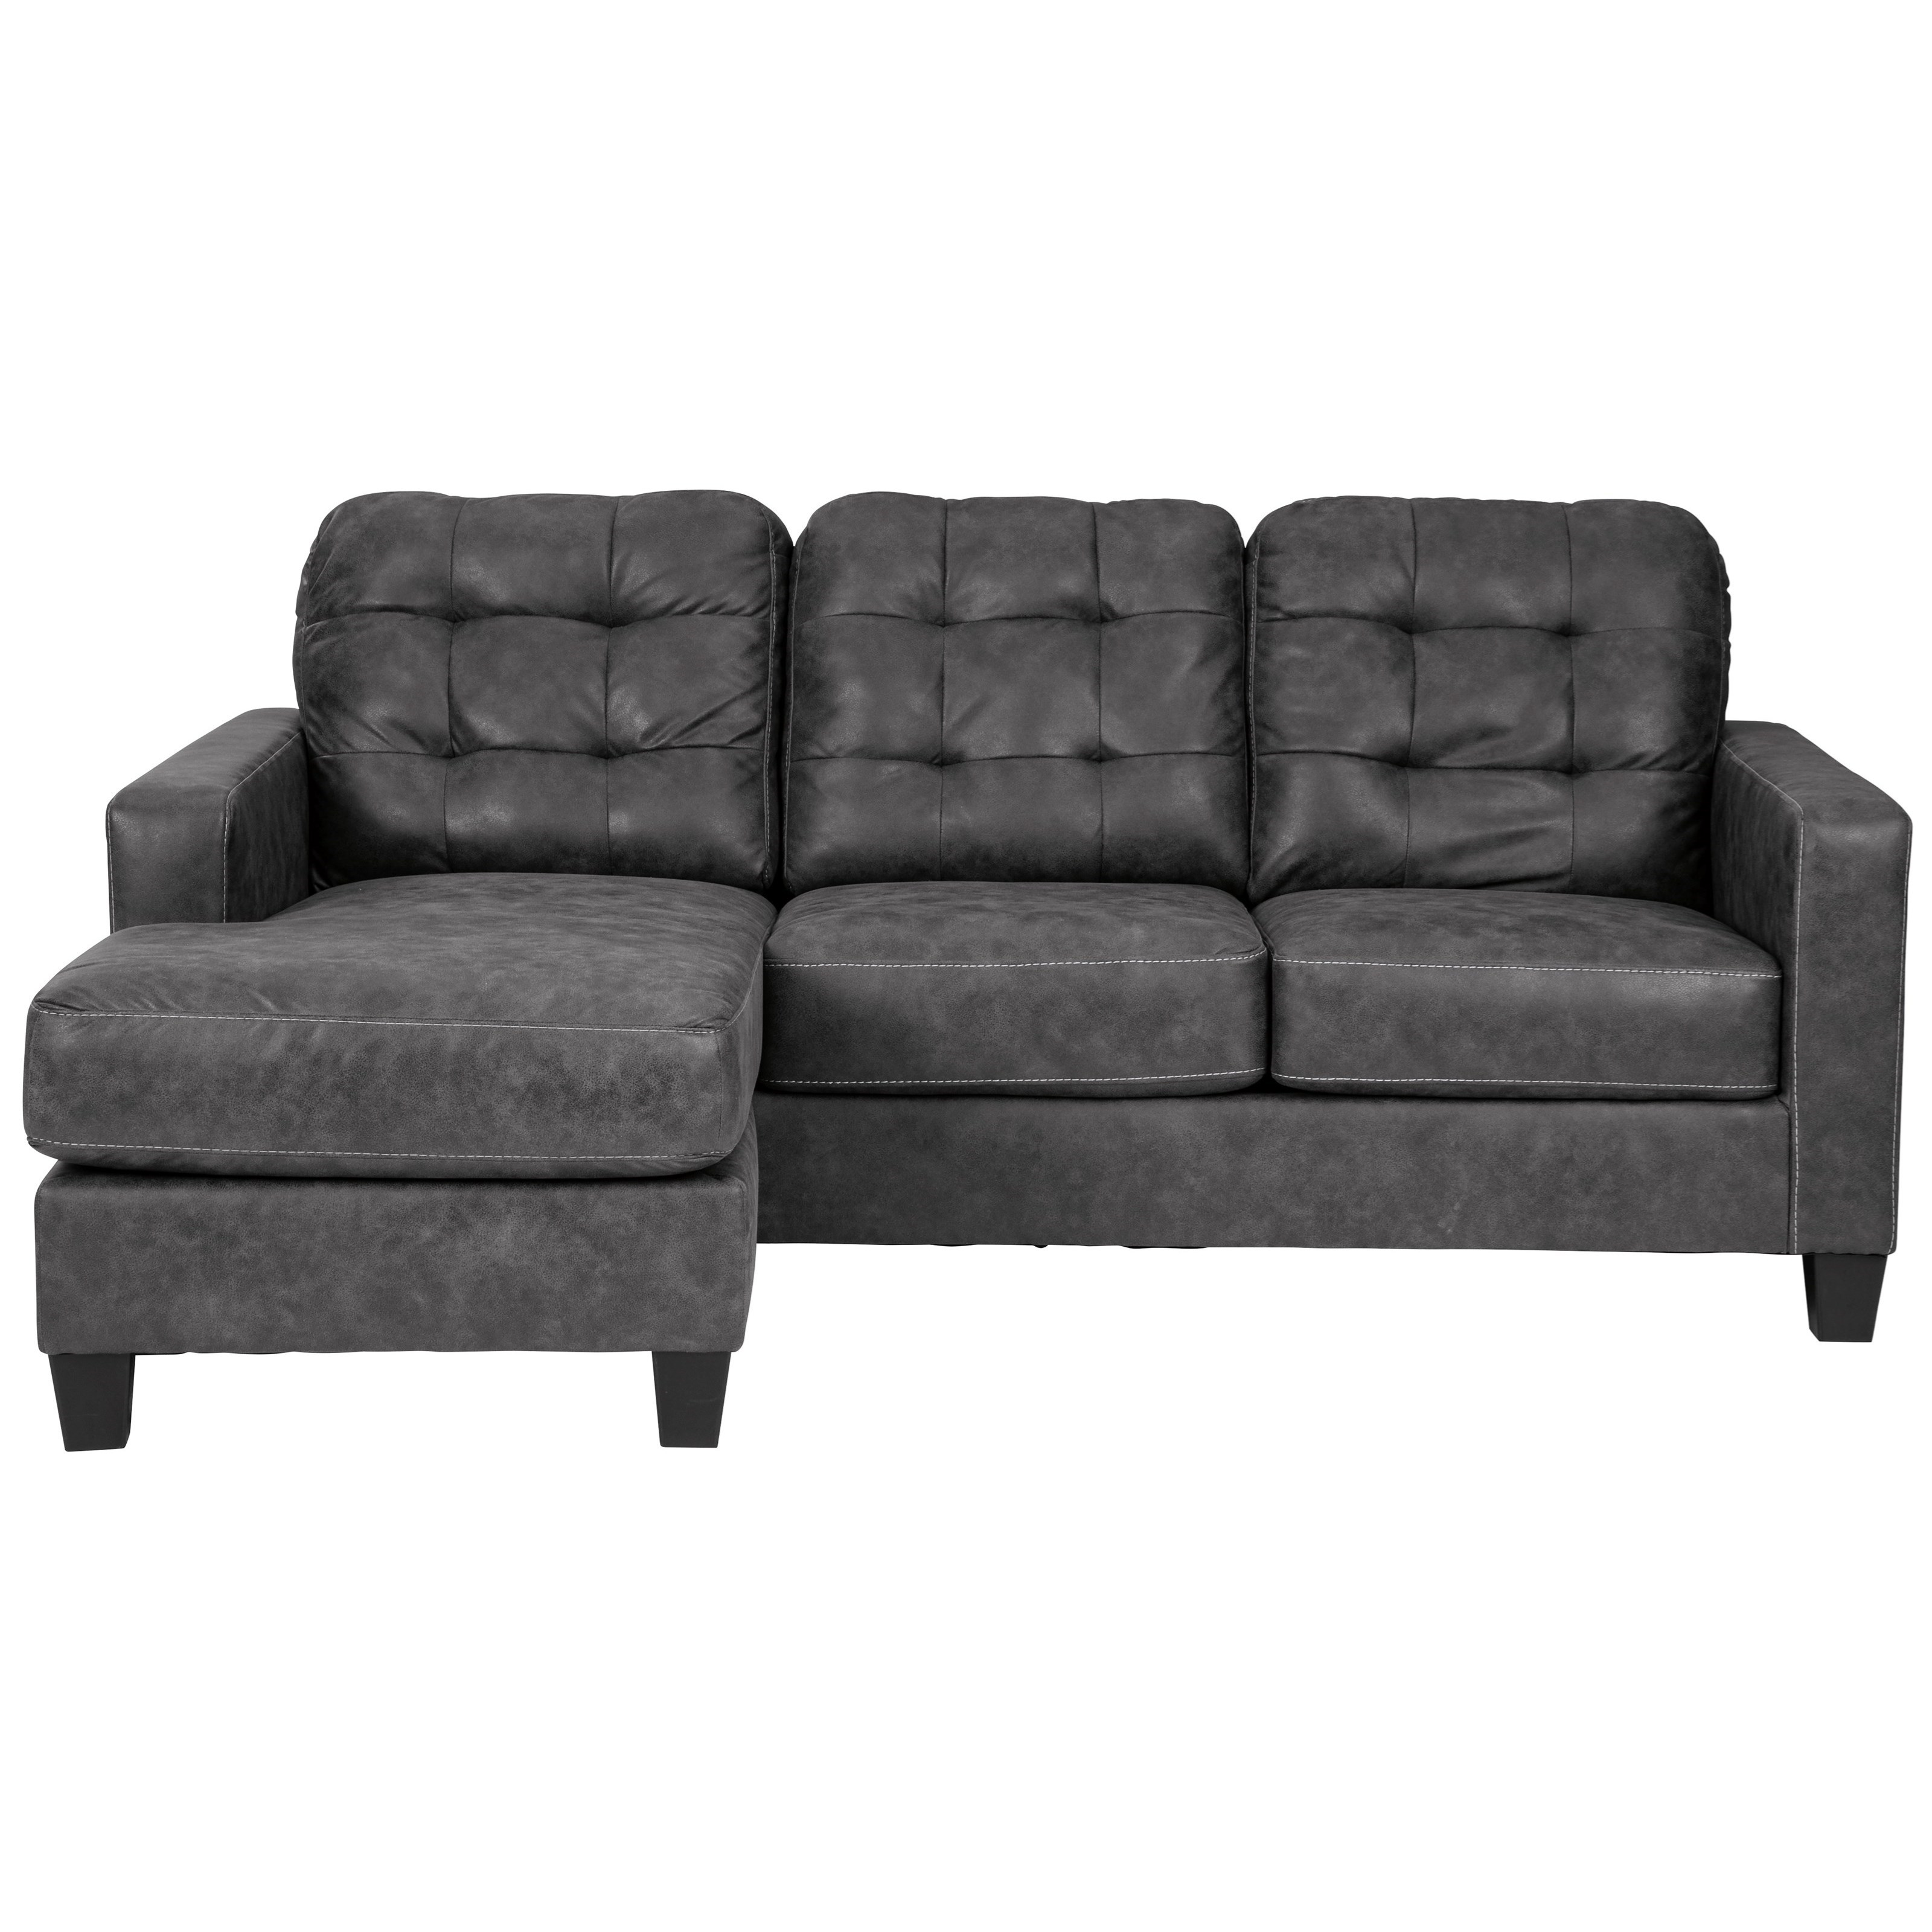 Venaldi Queen Sleeper Sofa with Chaise by Benchcraft at Walker's Furniture